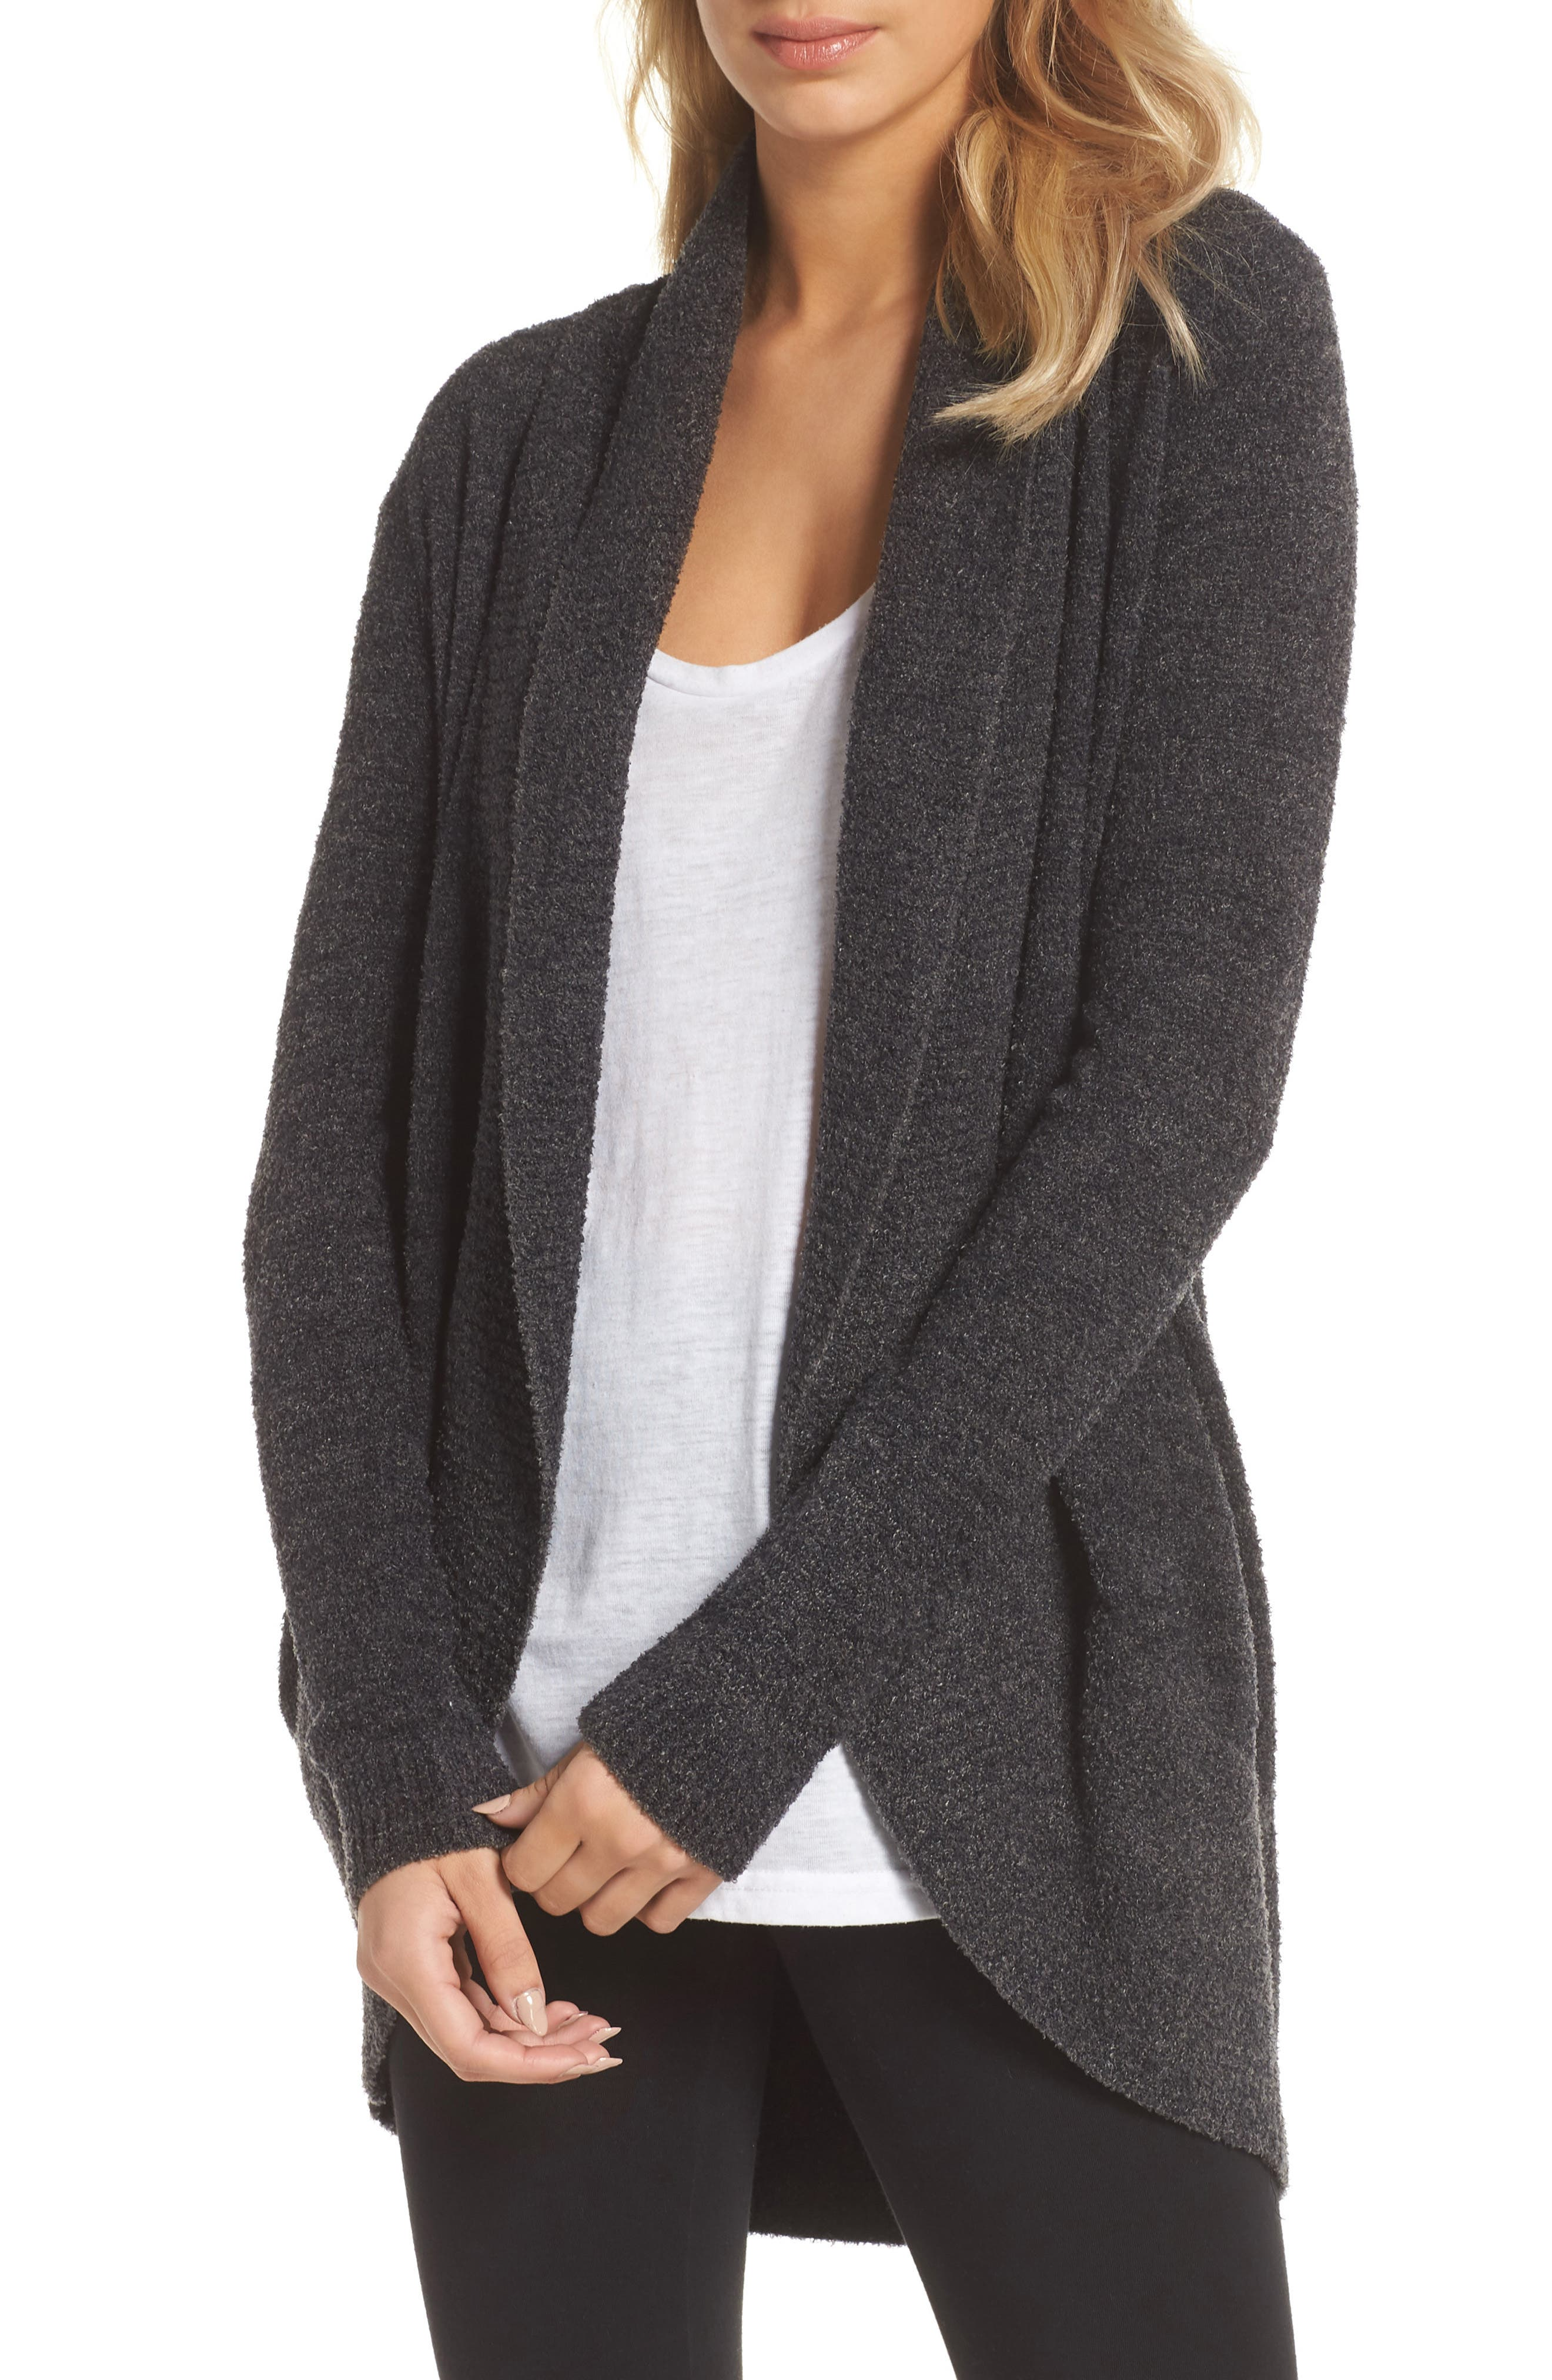 CozyChic Lite<sup>®</sup> Circle Cardigan,                             Main thumbnail 1, color,                             Carbon/ Black Heather